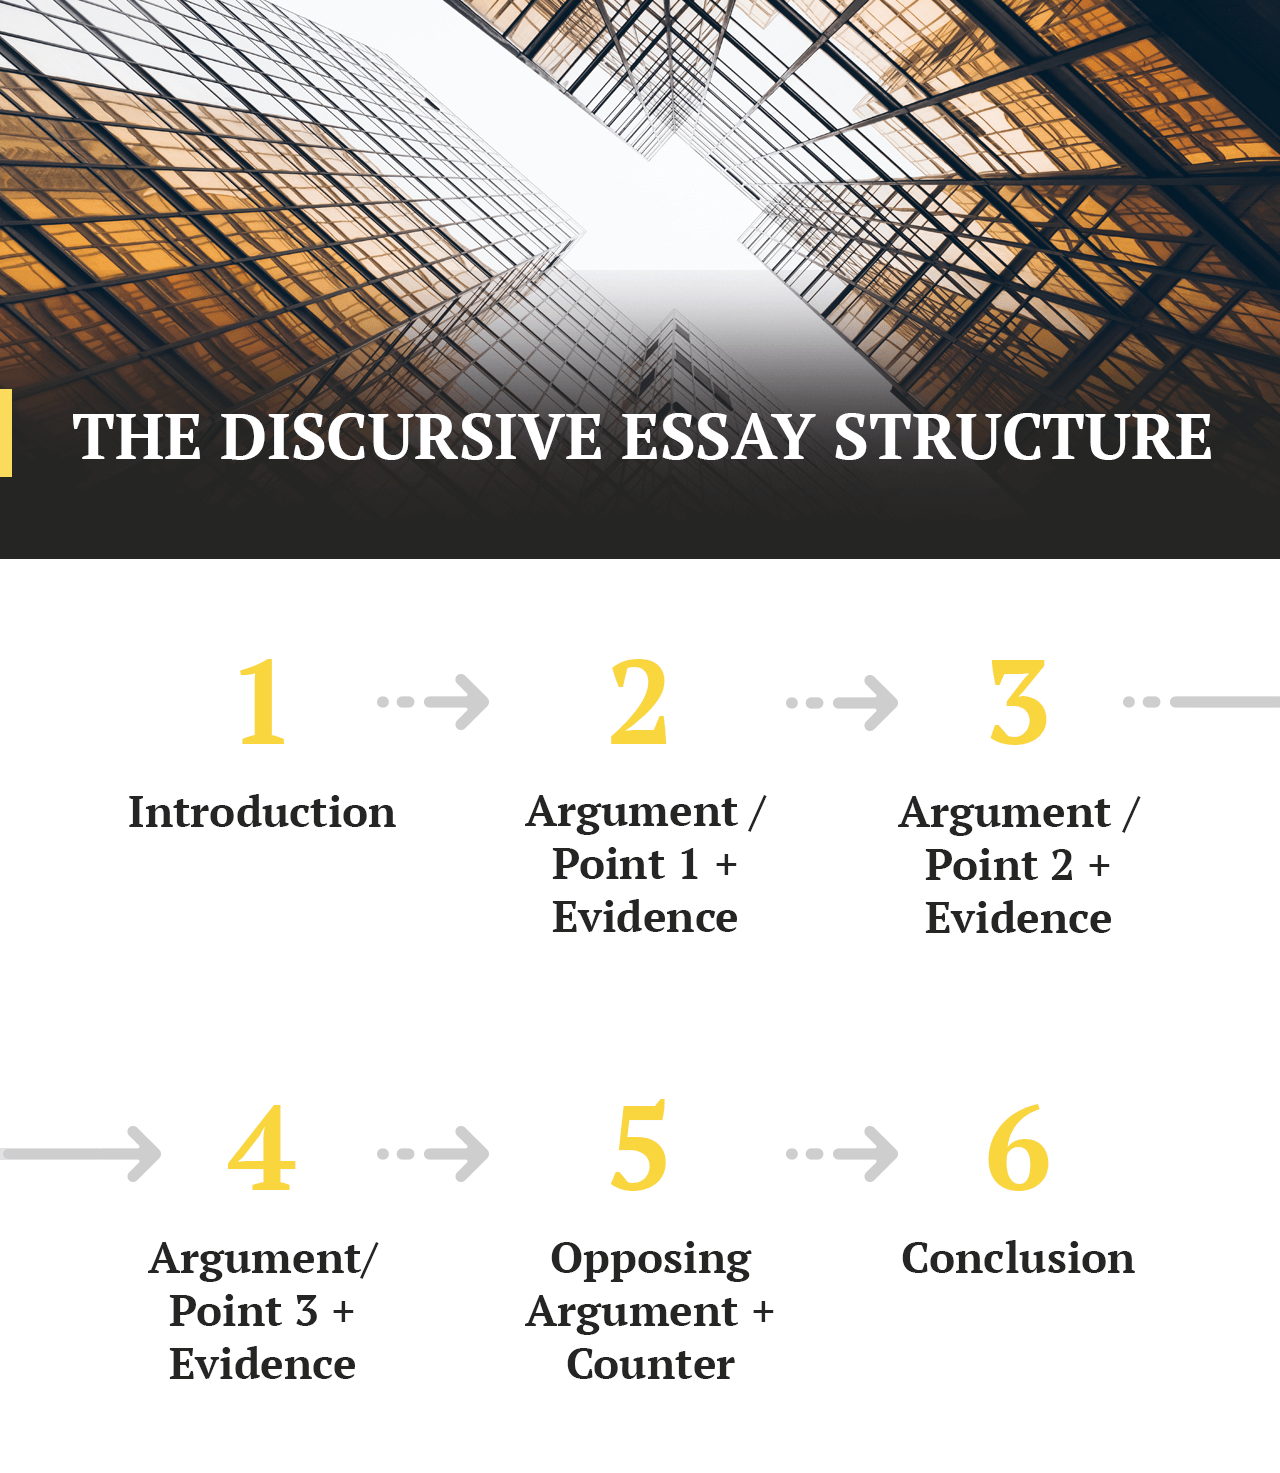 How To Write An Impressive Discursive Essay Tips To Succeed  Buy Business Plans also Cheap Business Plan Writers Uk  Importance Of English Language Essay